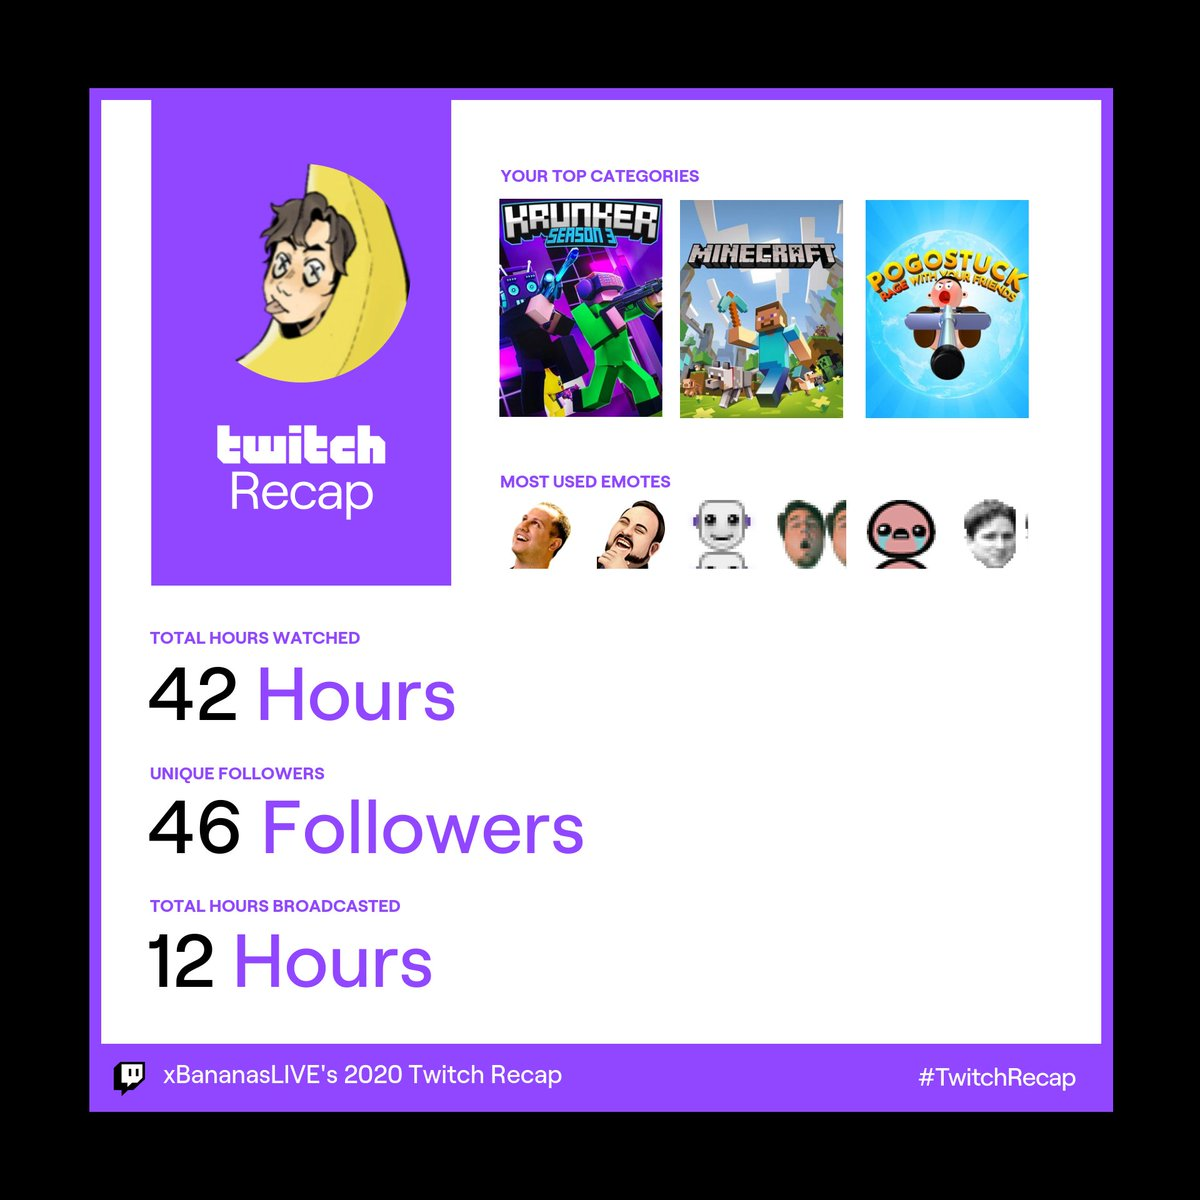 My #TwitchRecap isn't much but here it is ig